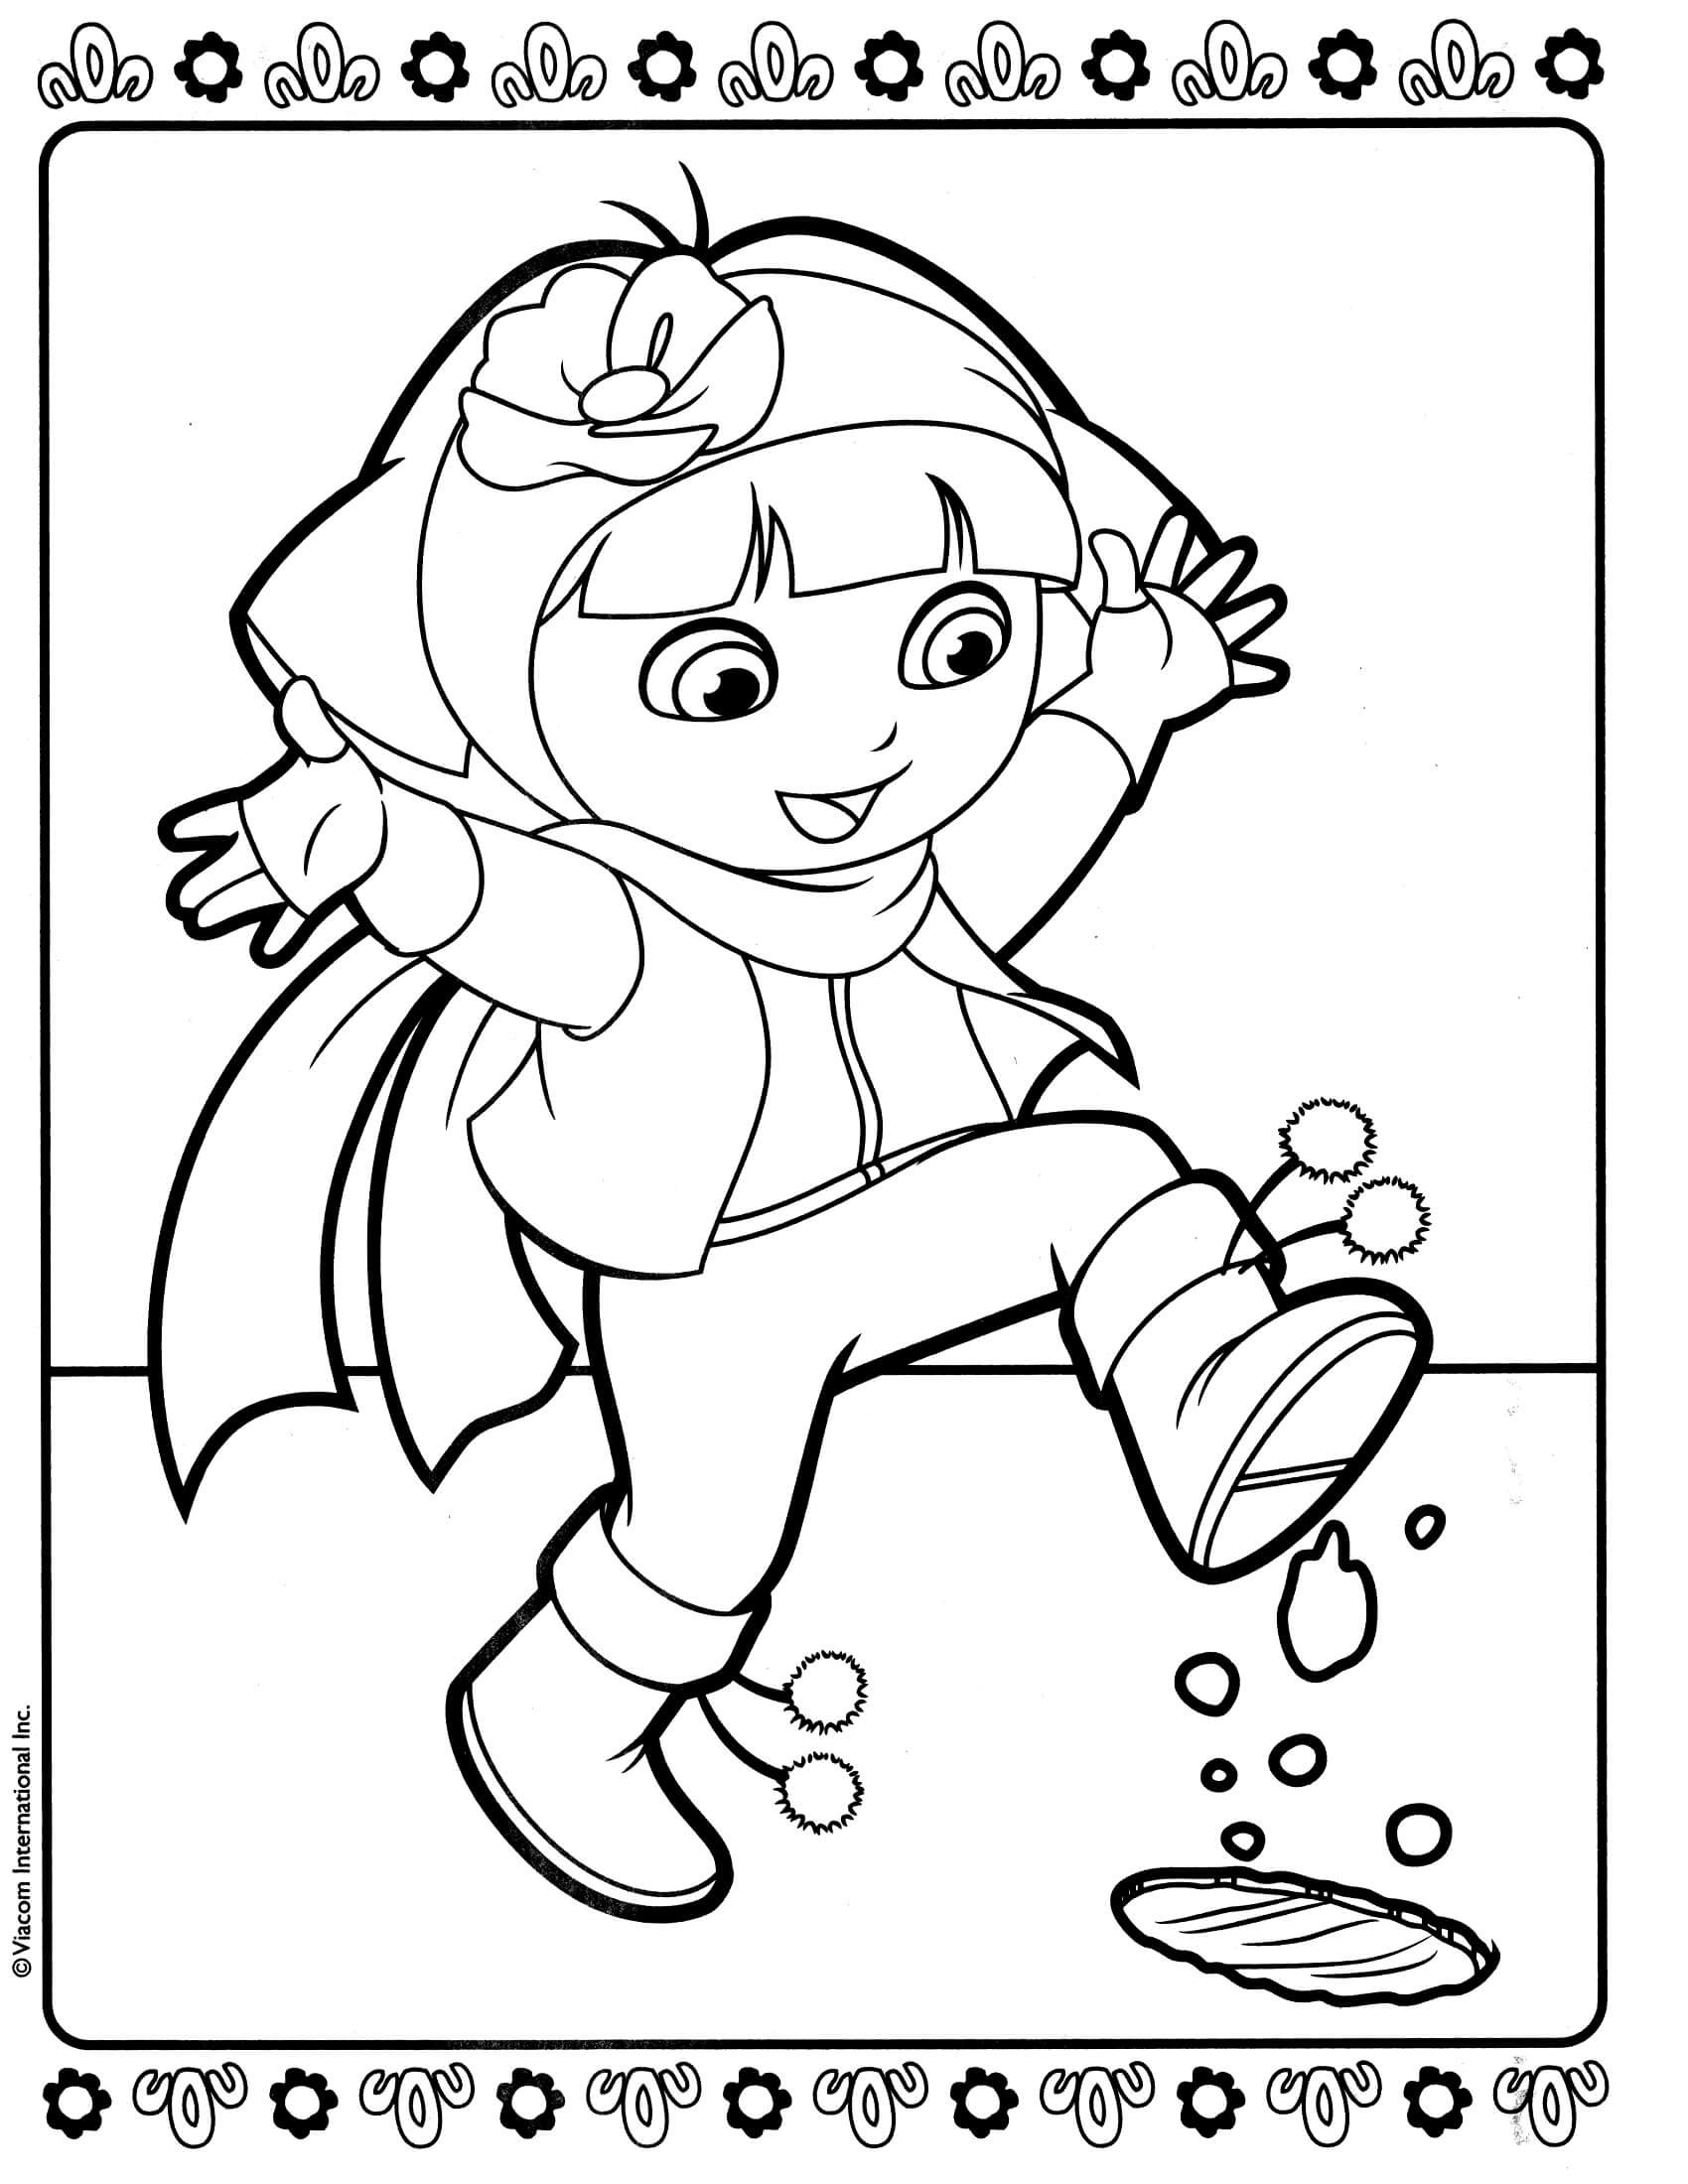 Dora Coloring Pages For Girls  Dora 9 – Coloringcolor